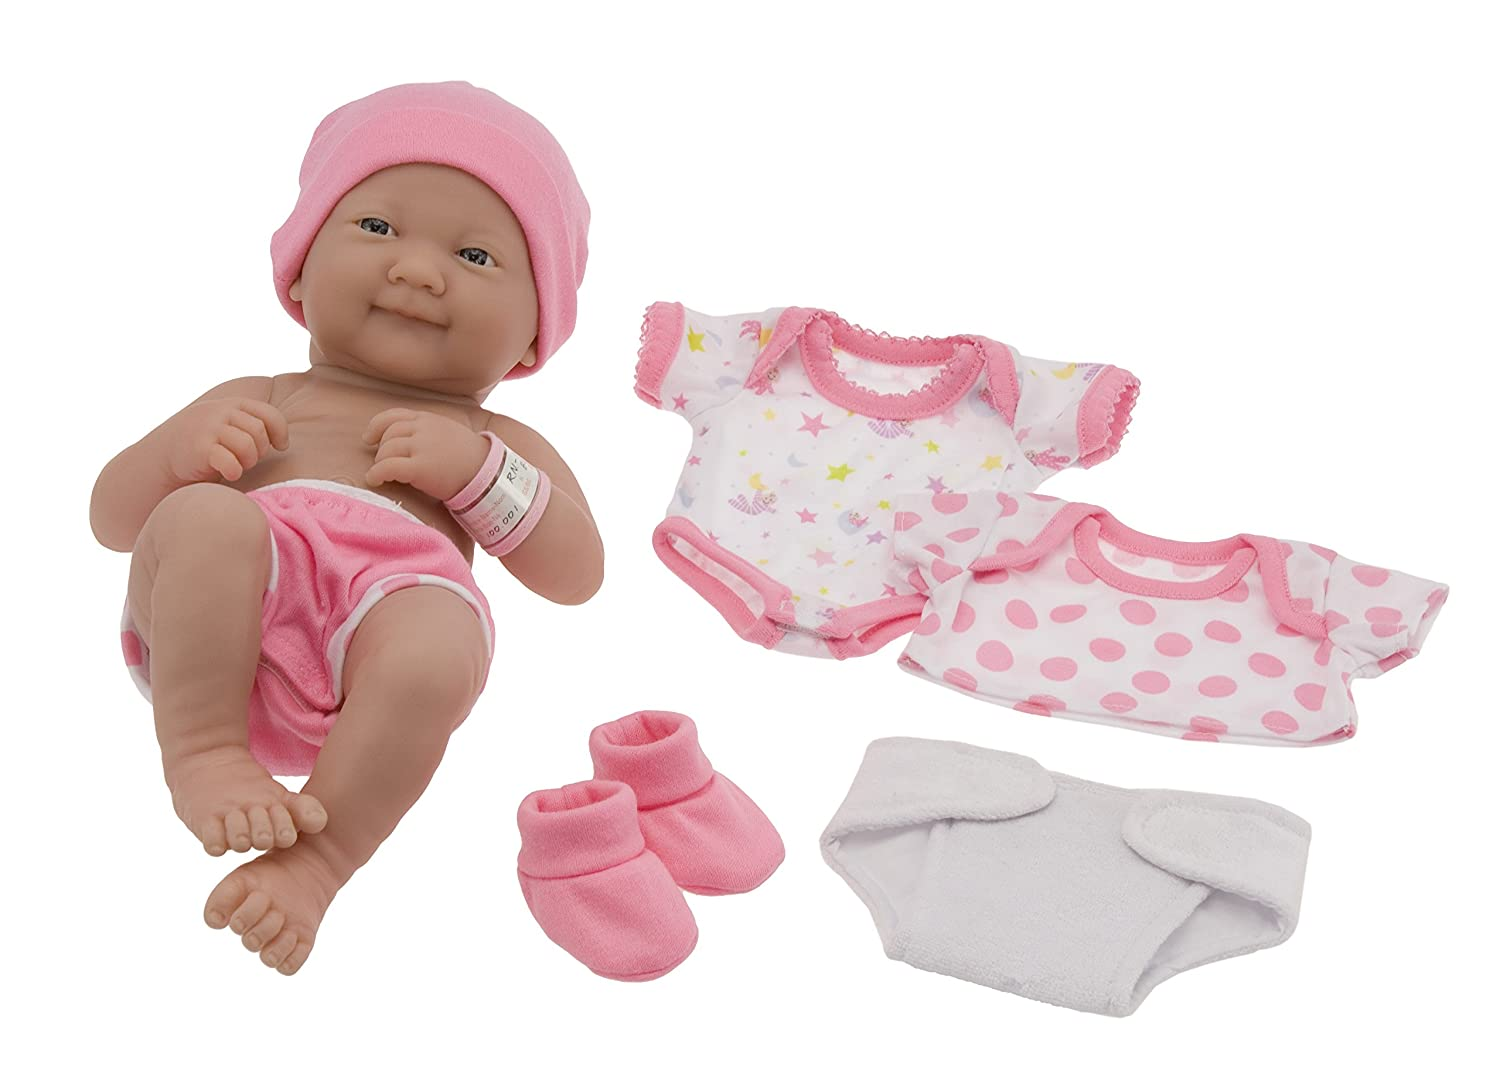 Baby dolls and accessories suggestions for 9 year old ...